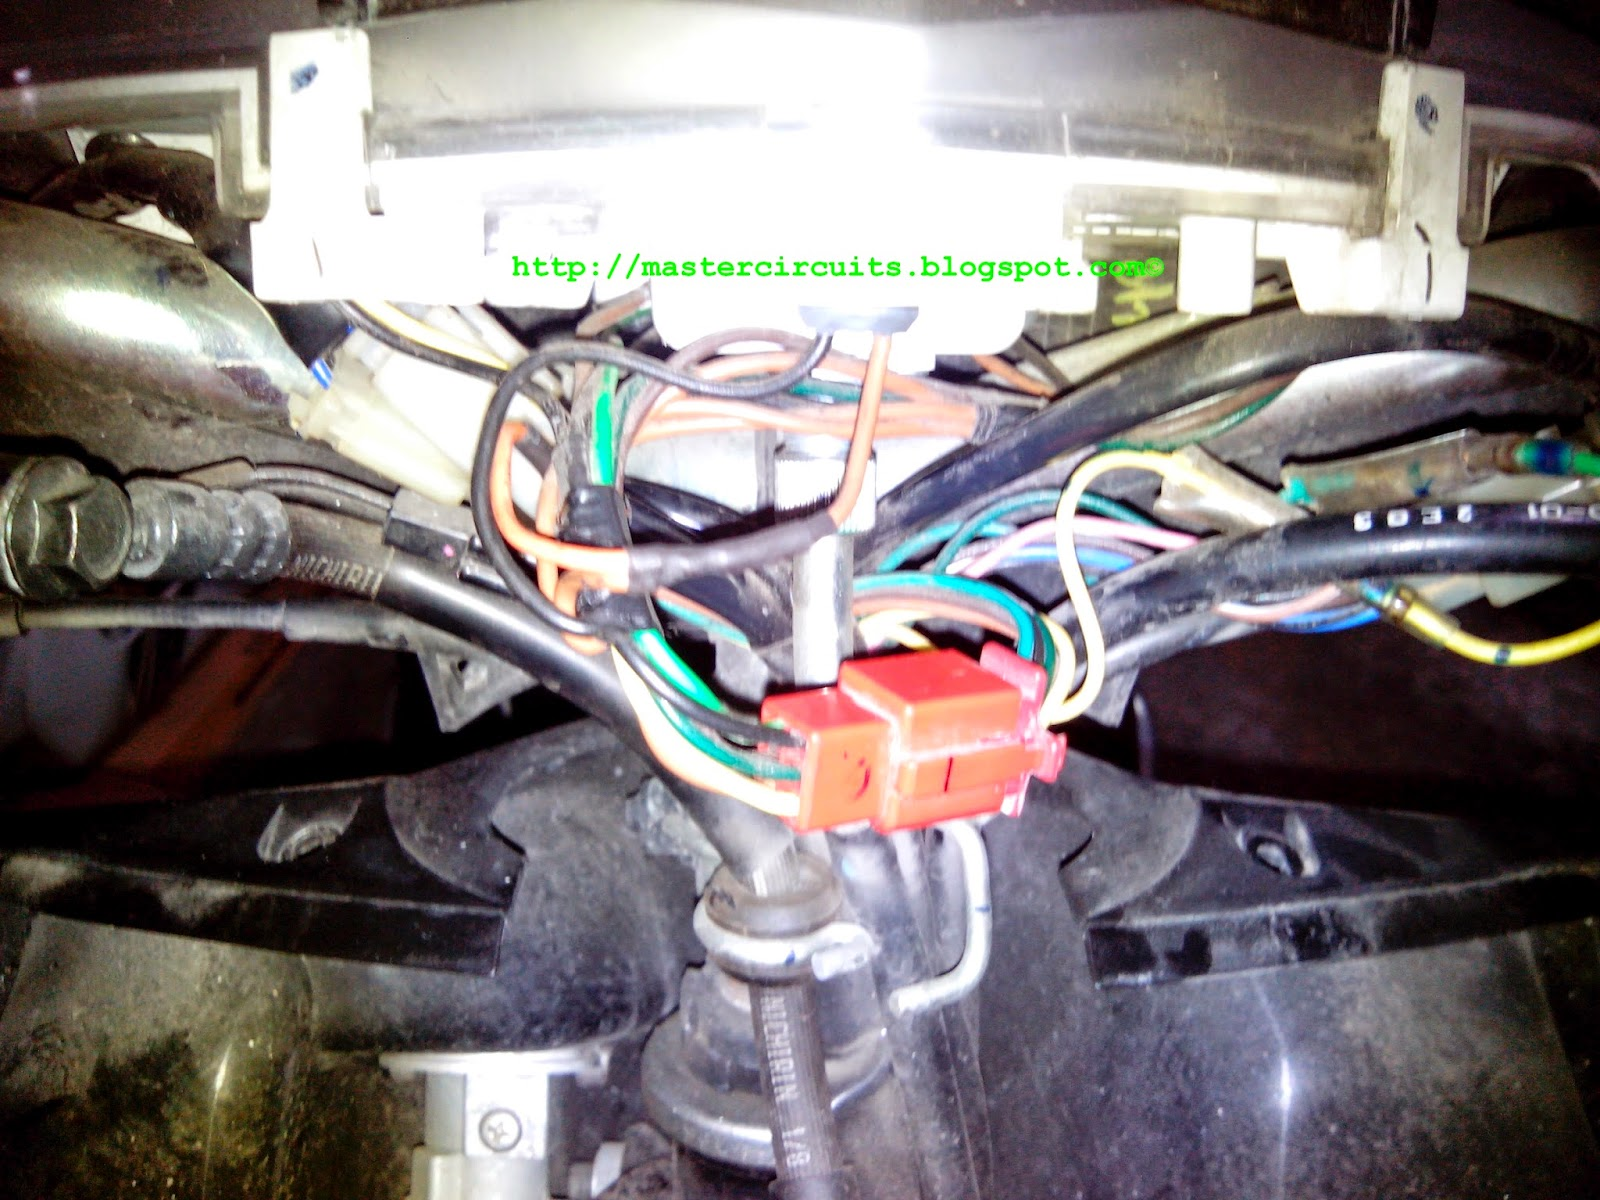 info manual yamaha mio soul led headlight conversion mio soul is the easiest one to convert since the panel lights was already dc isolating the wire the has the ac driven source for park and headlight and